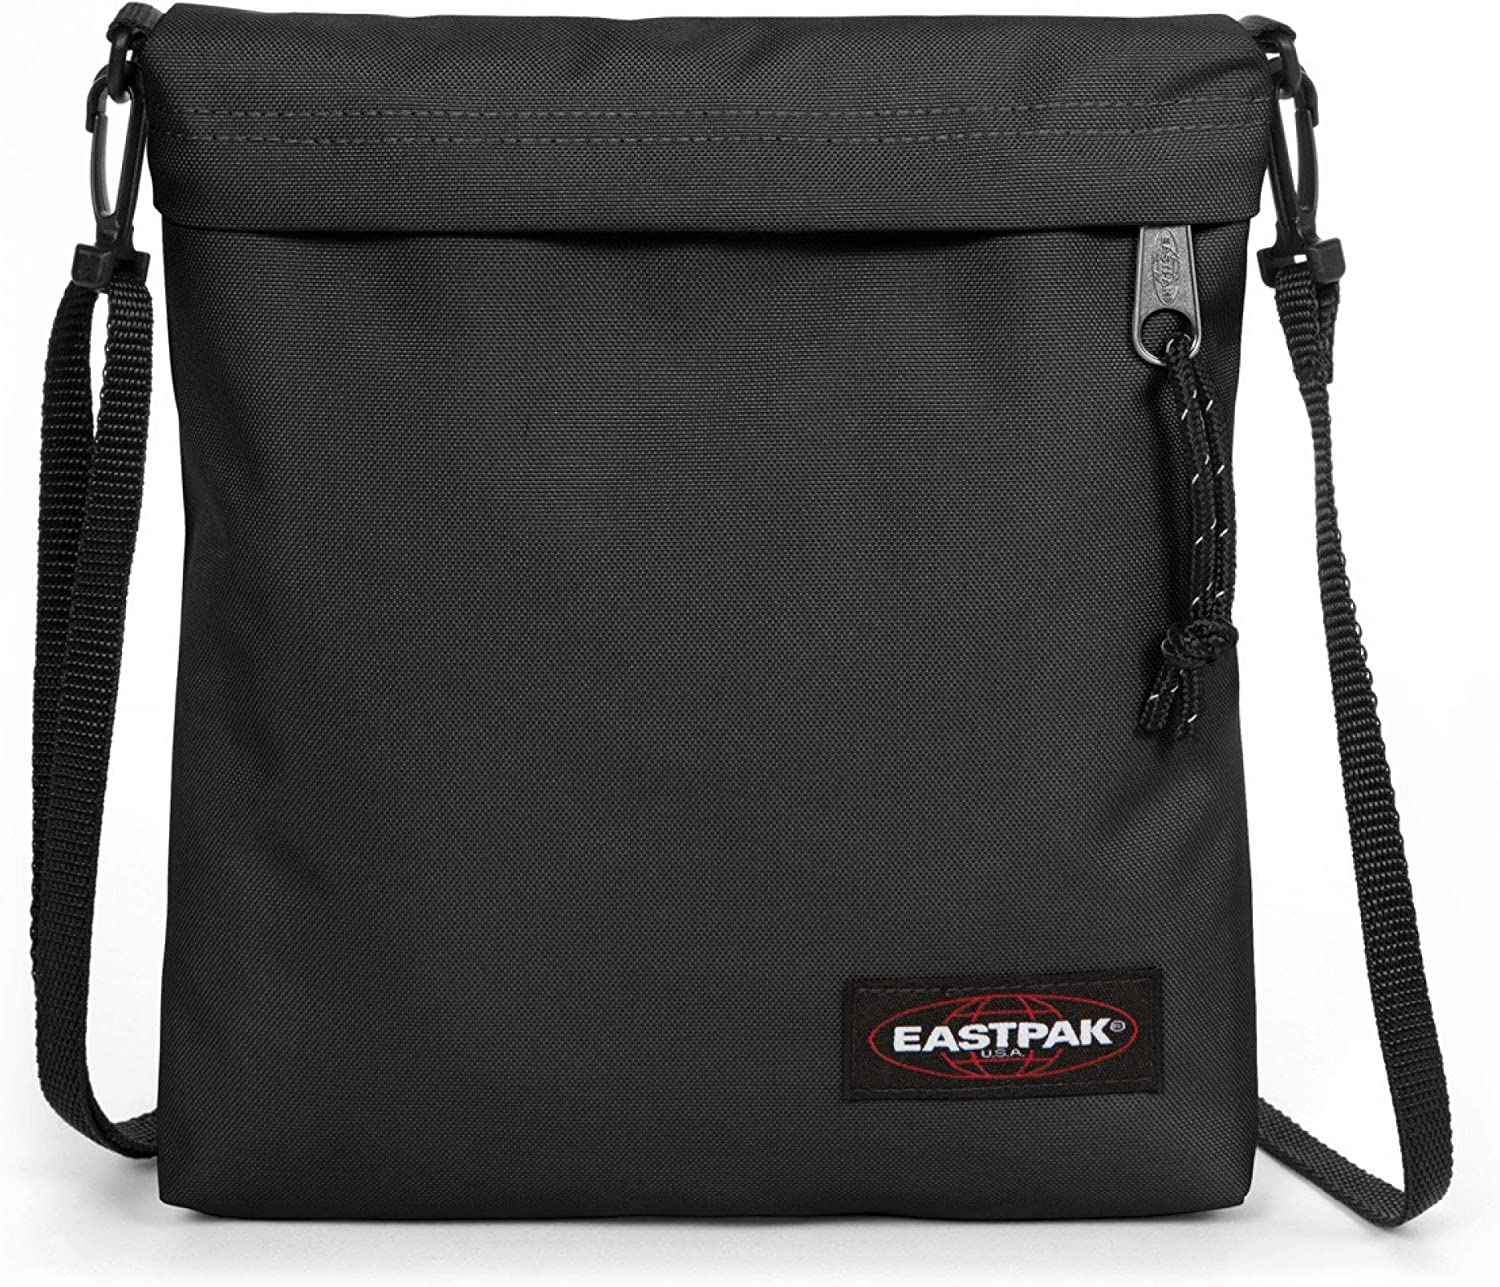 Eastpak Men's Lux Shoulder Bag